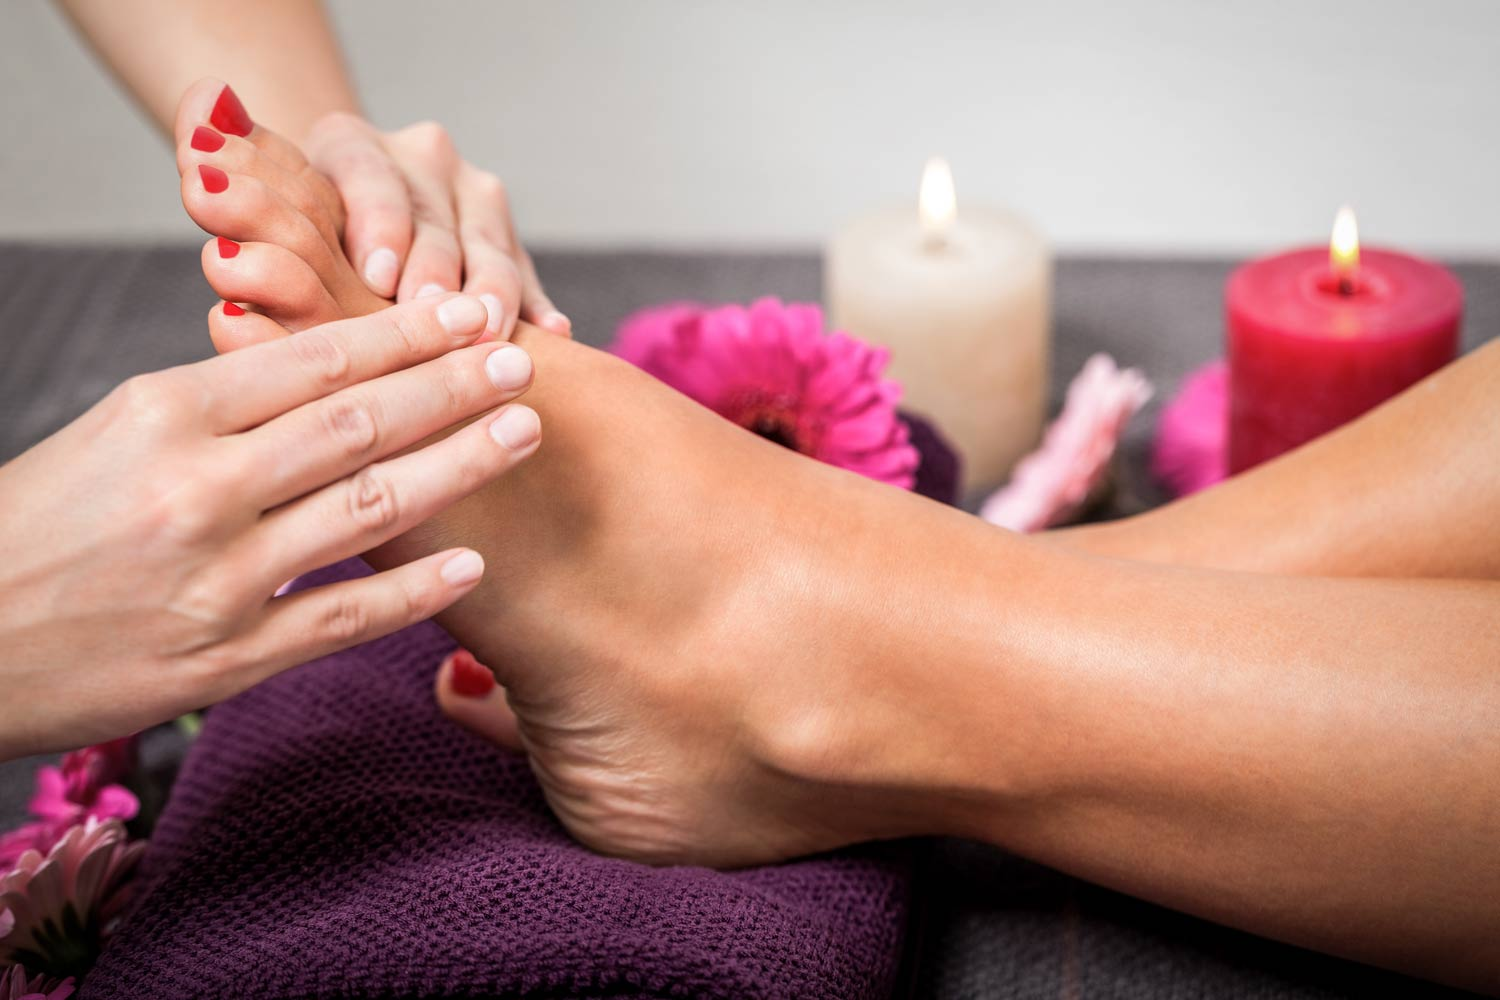 Foot reflexology is administered by female massage therapist in a spa setting